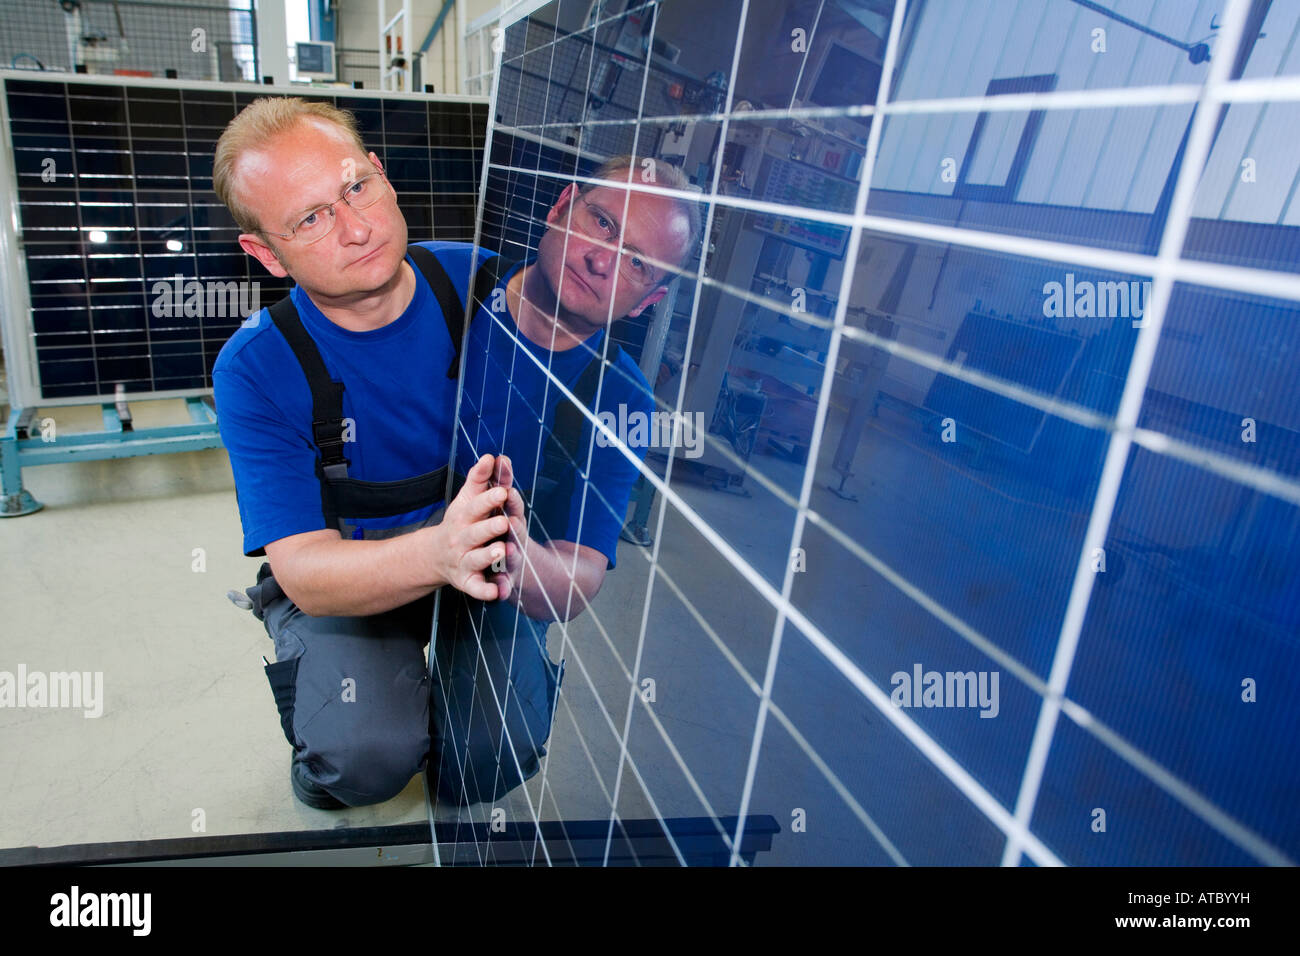 Entreprise solaire SolarWorld AG production de modules solaires Photo Stock